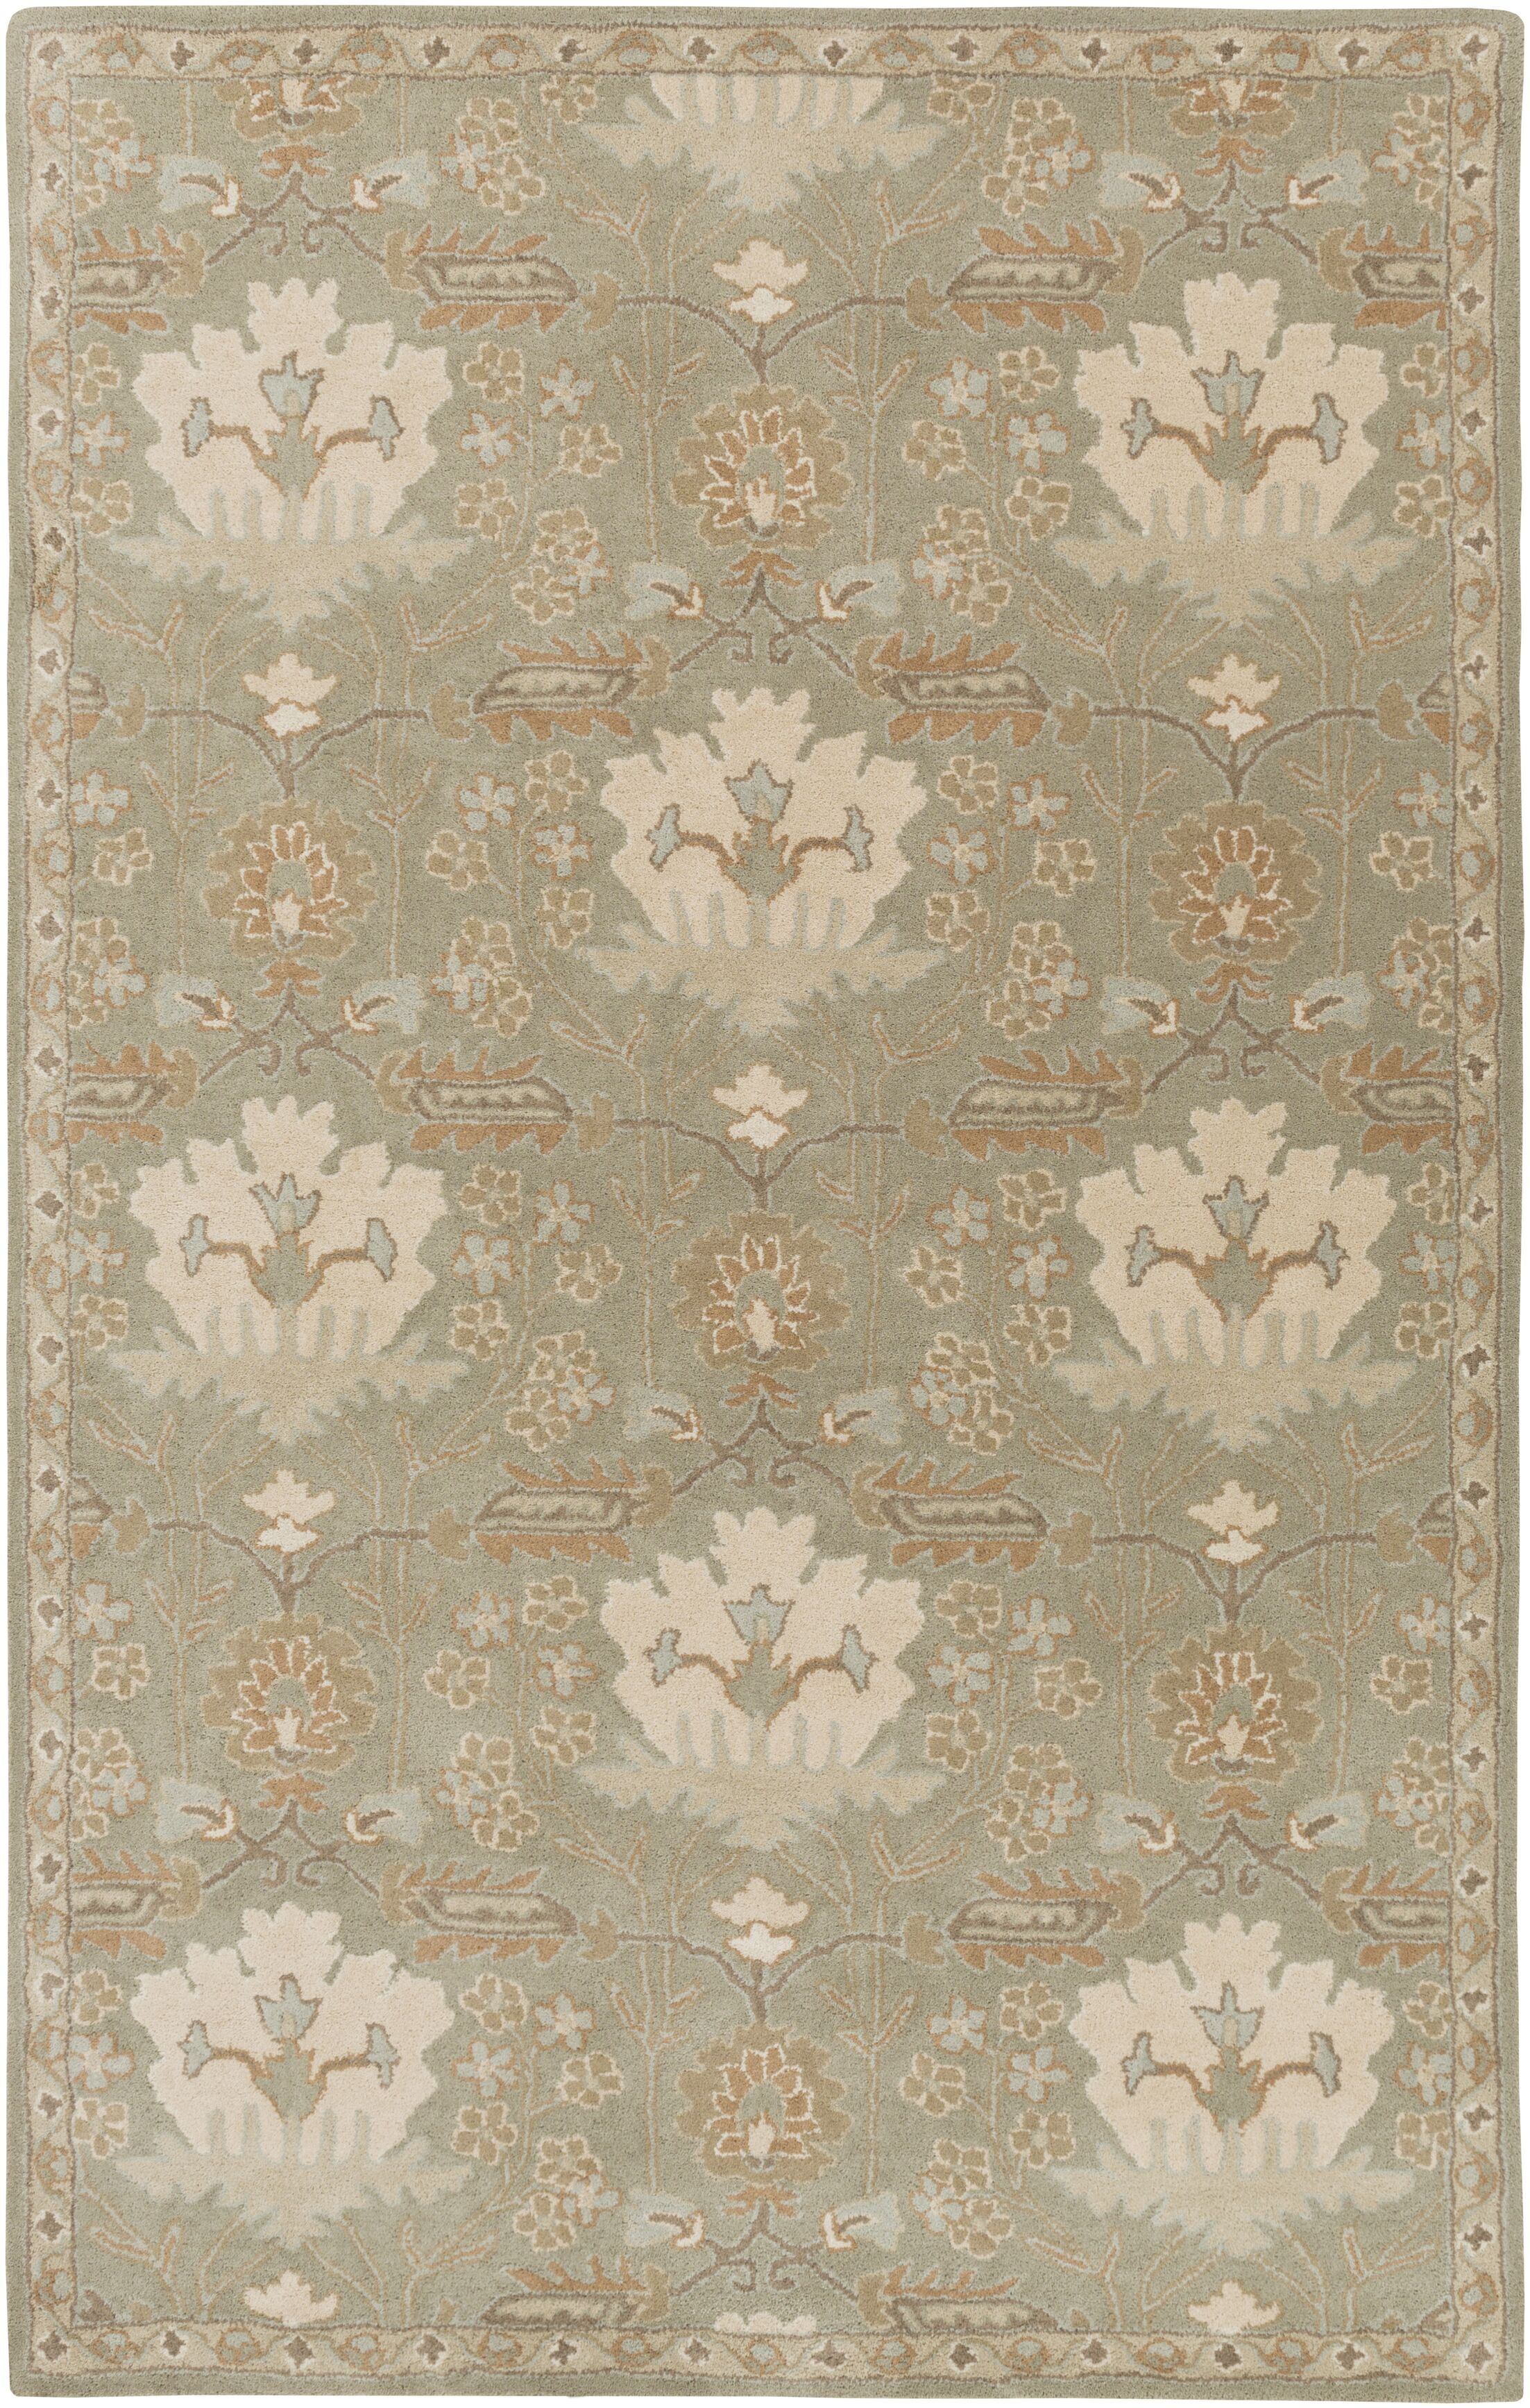 Kempinski Hand-Tufted Gray Area Rug Rug Size: Rectangle 10' x 14'